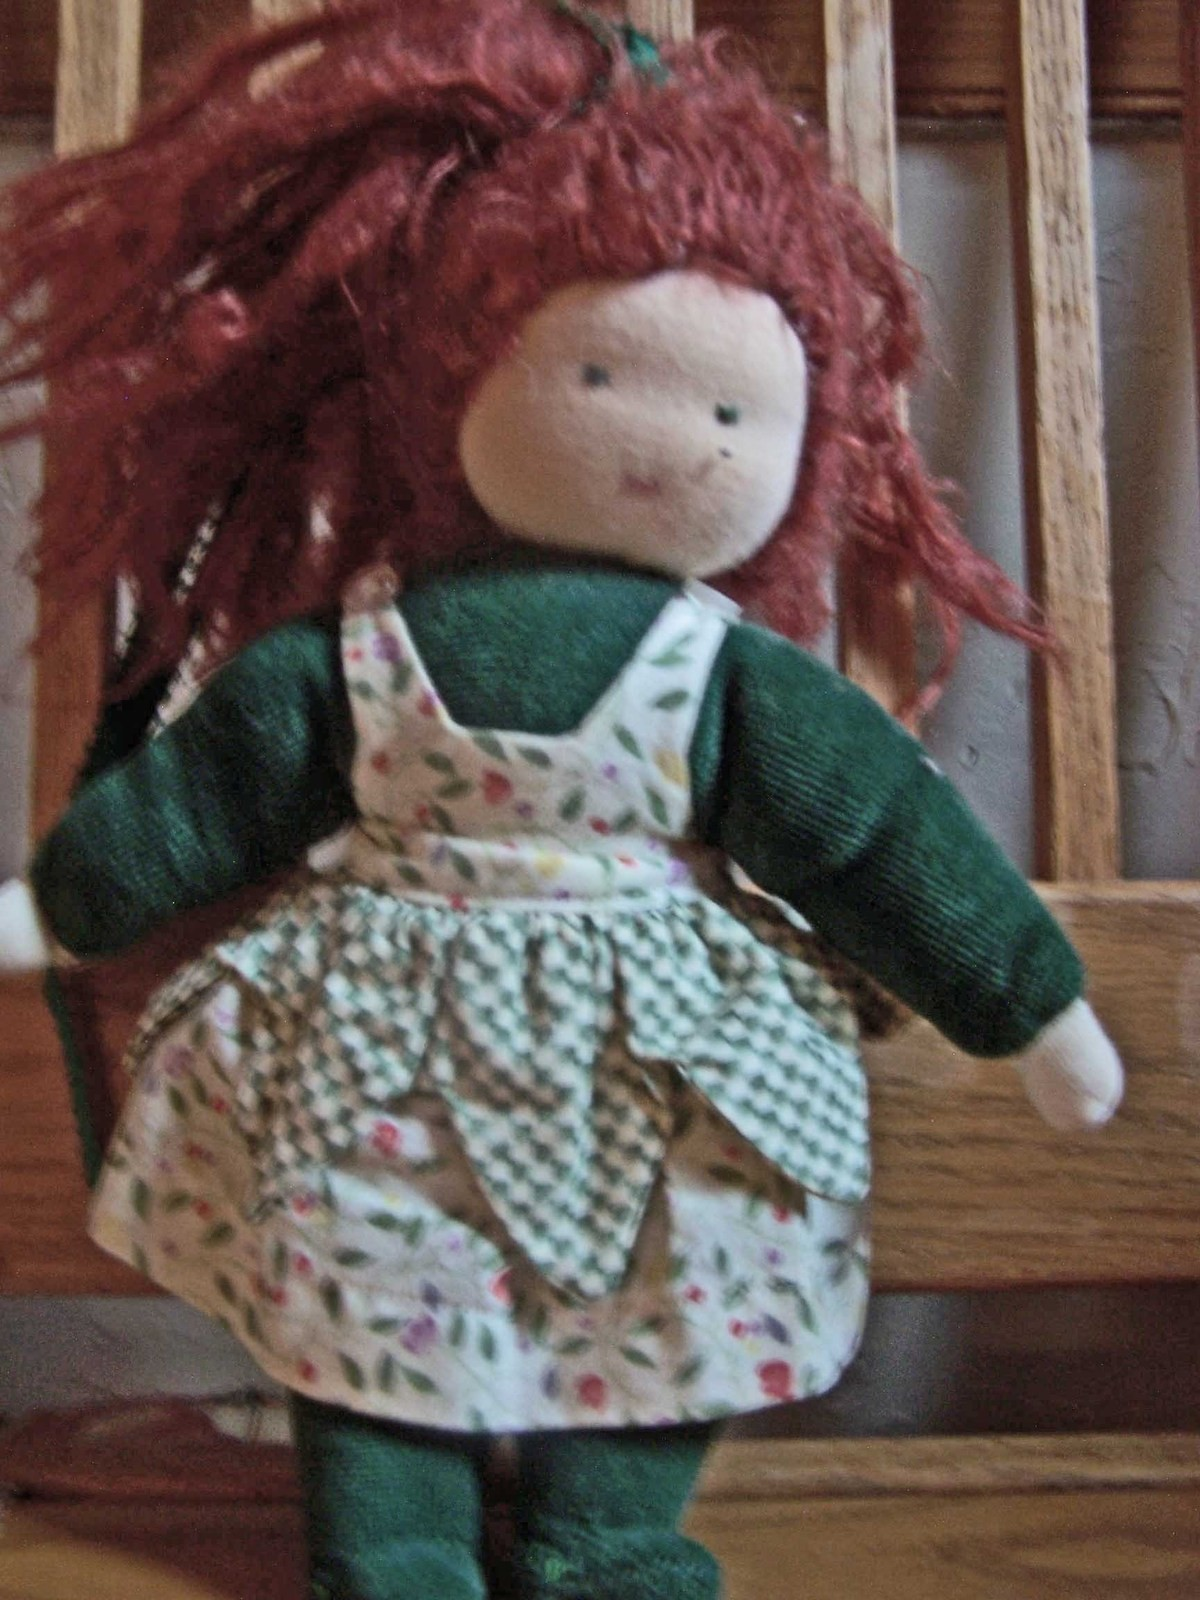 Hand Sewn Doll 183 A Rag Dolls A Person Plushie 183 Sewing